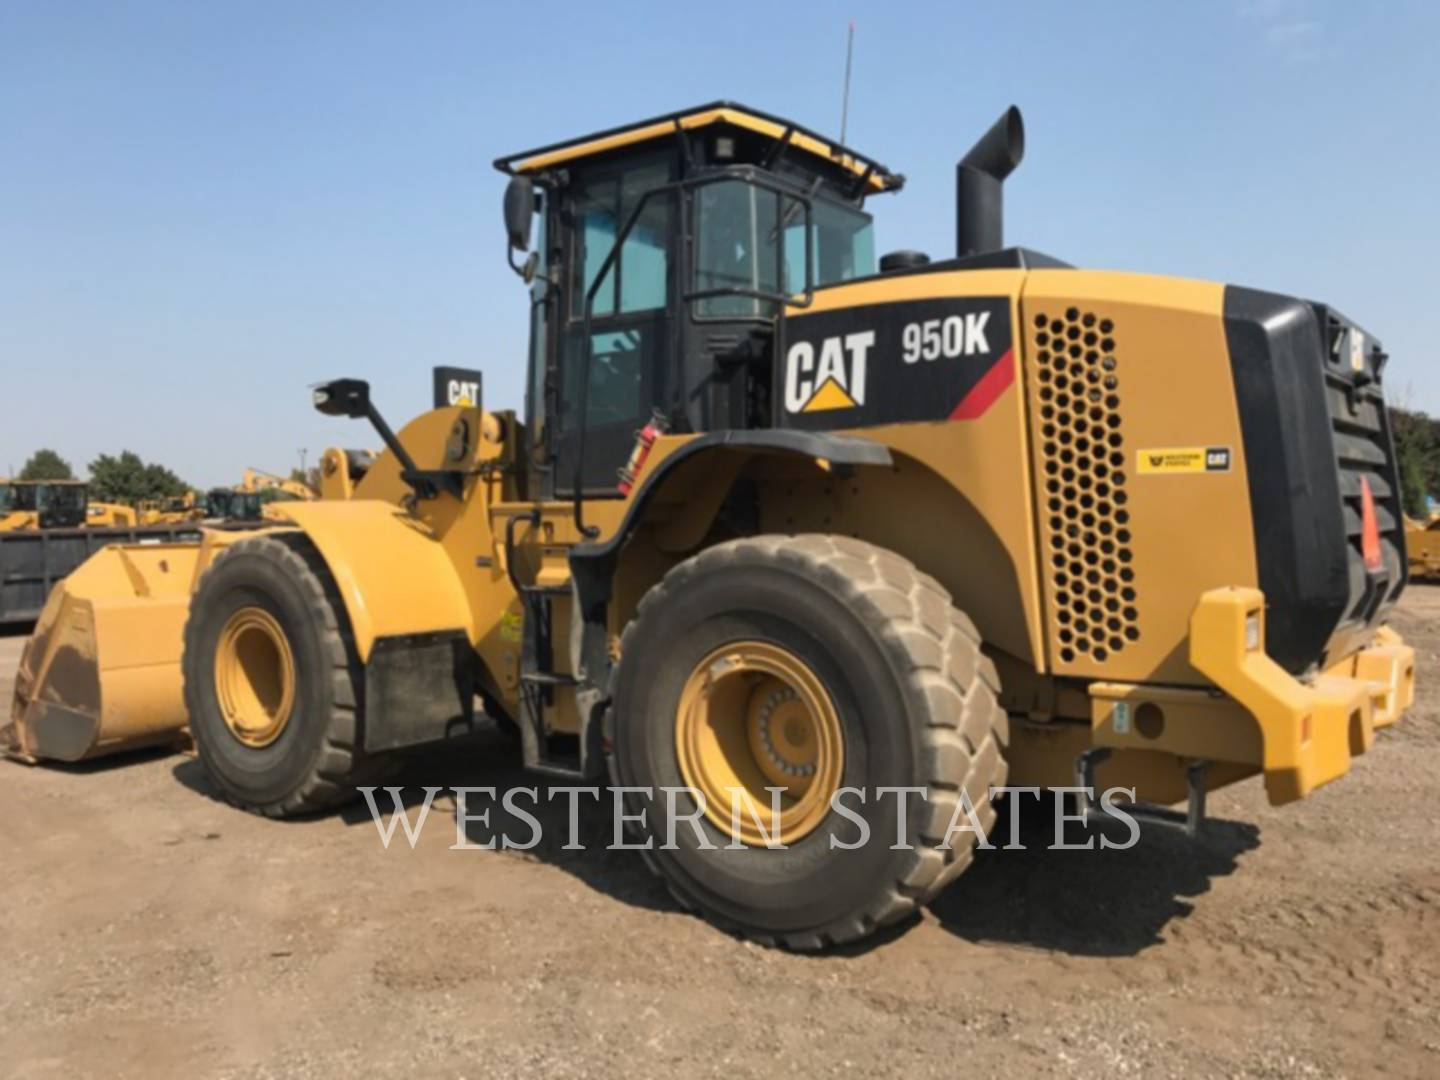 2013 CATERPILLAR 950K image2